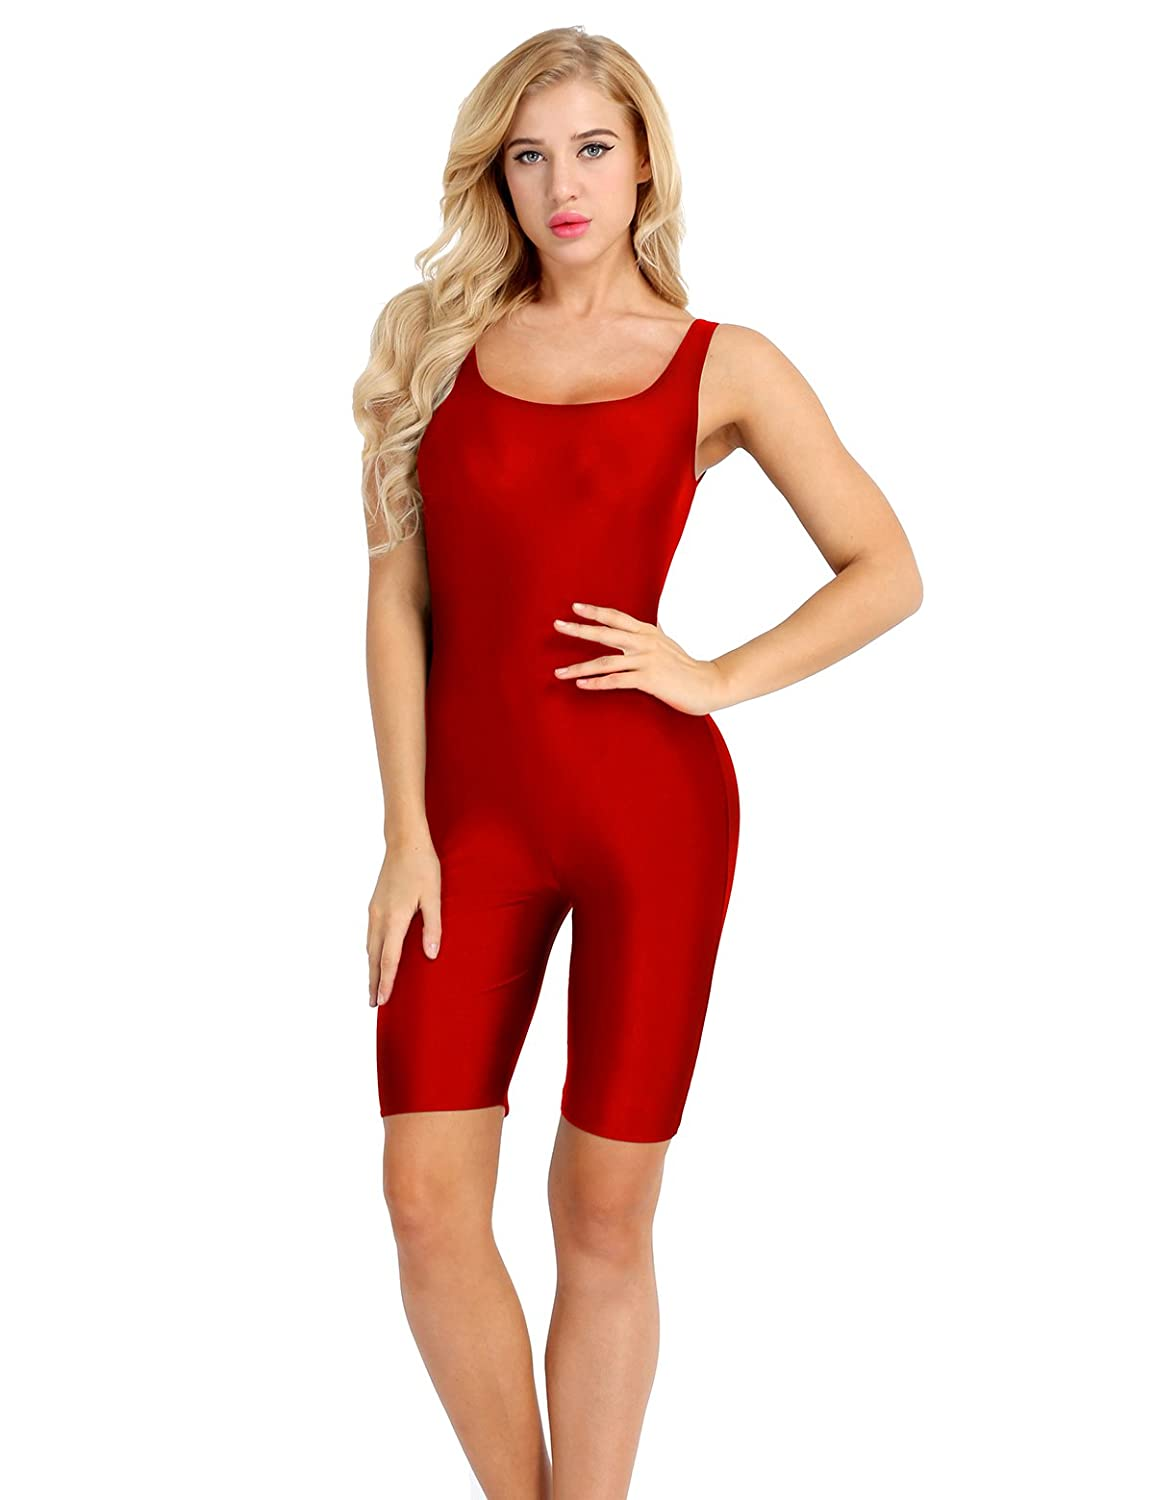 dPois Womens Sleeveless Stretch Solid Lycra Tank Top Gym Sports Yoga Leotard Unitard Bodysuit